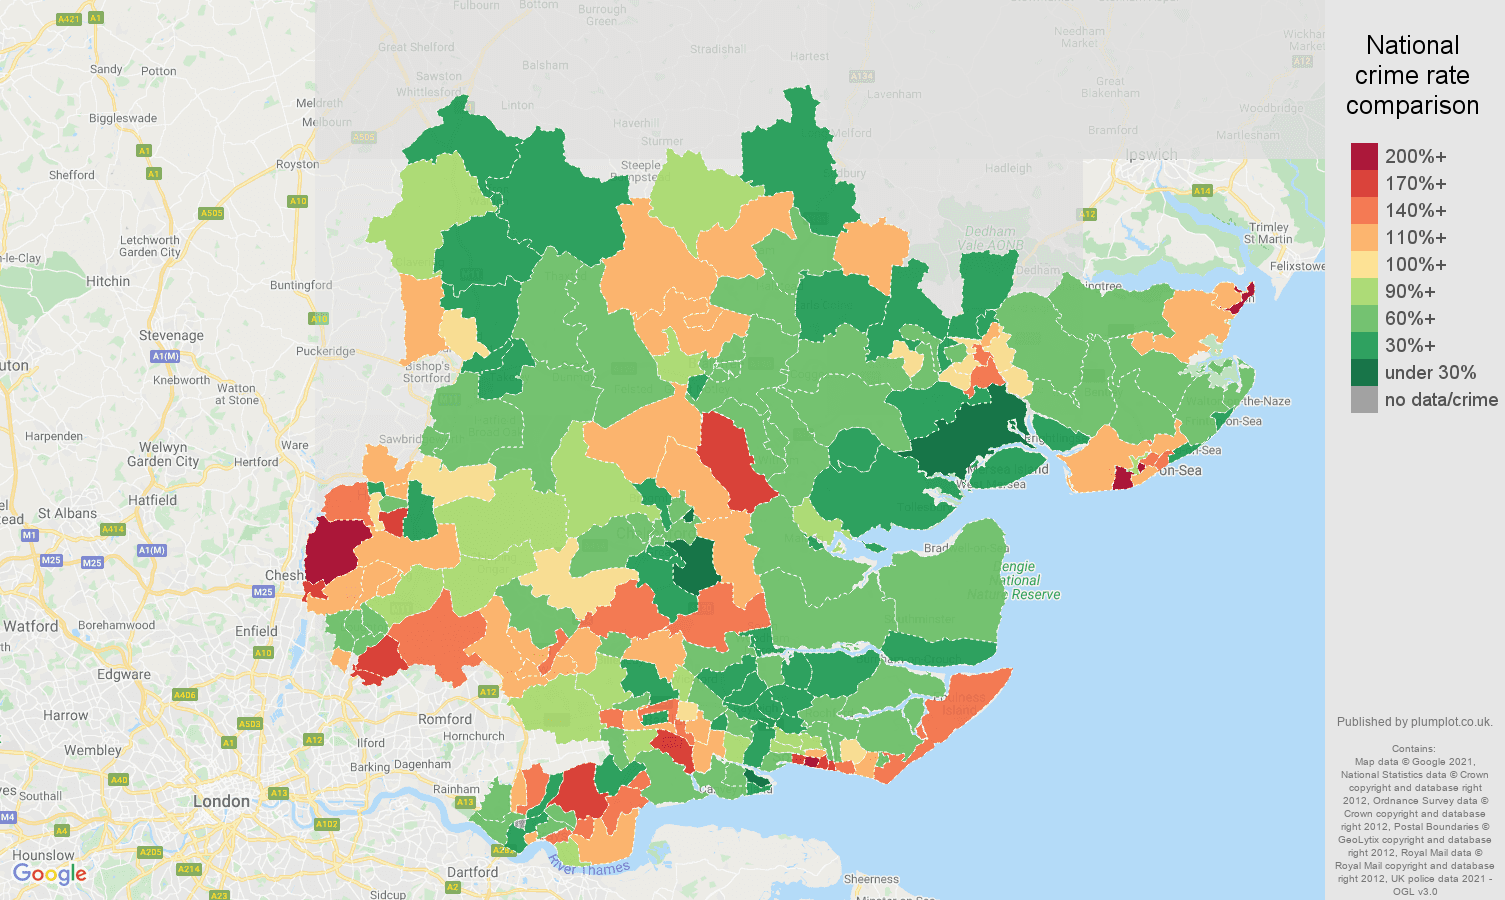 Essex burglary crime rate comparison map